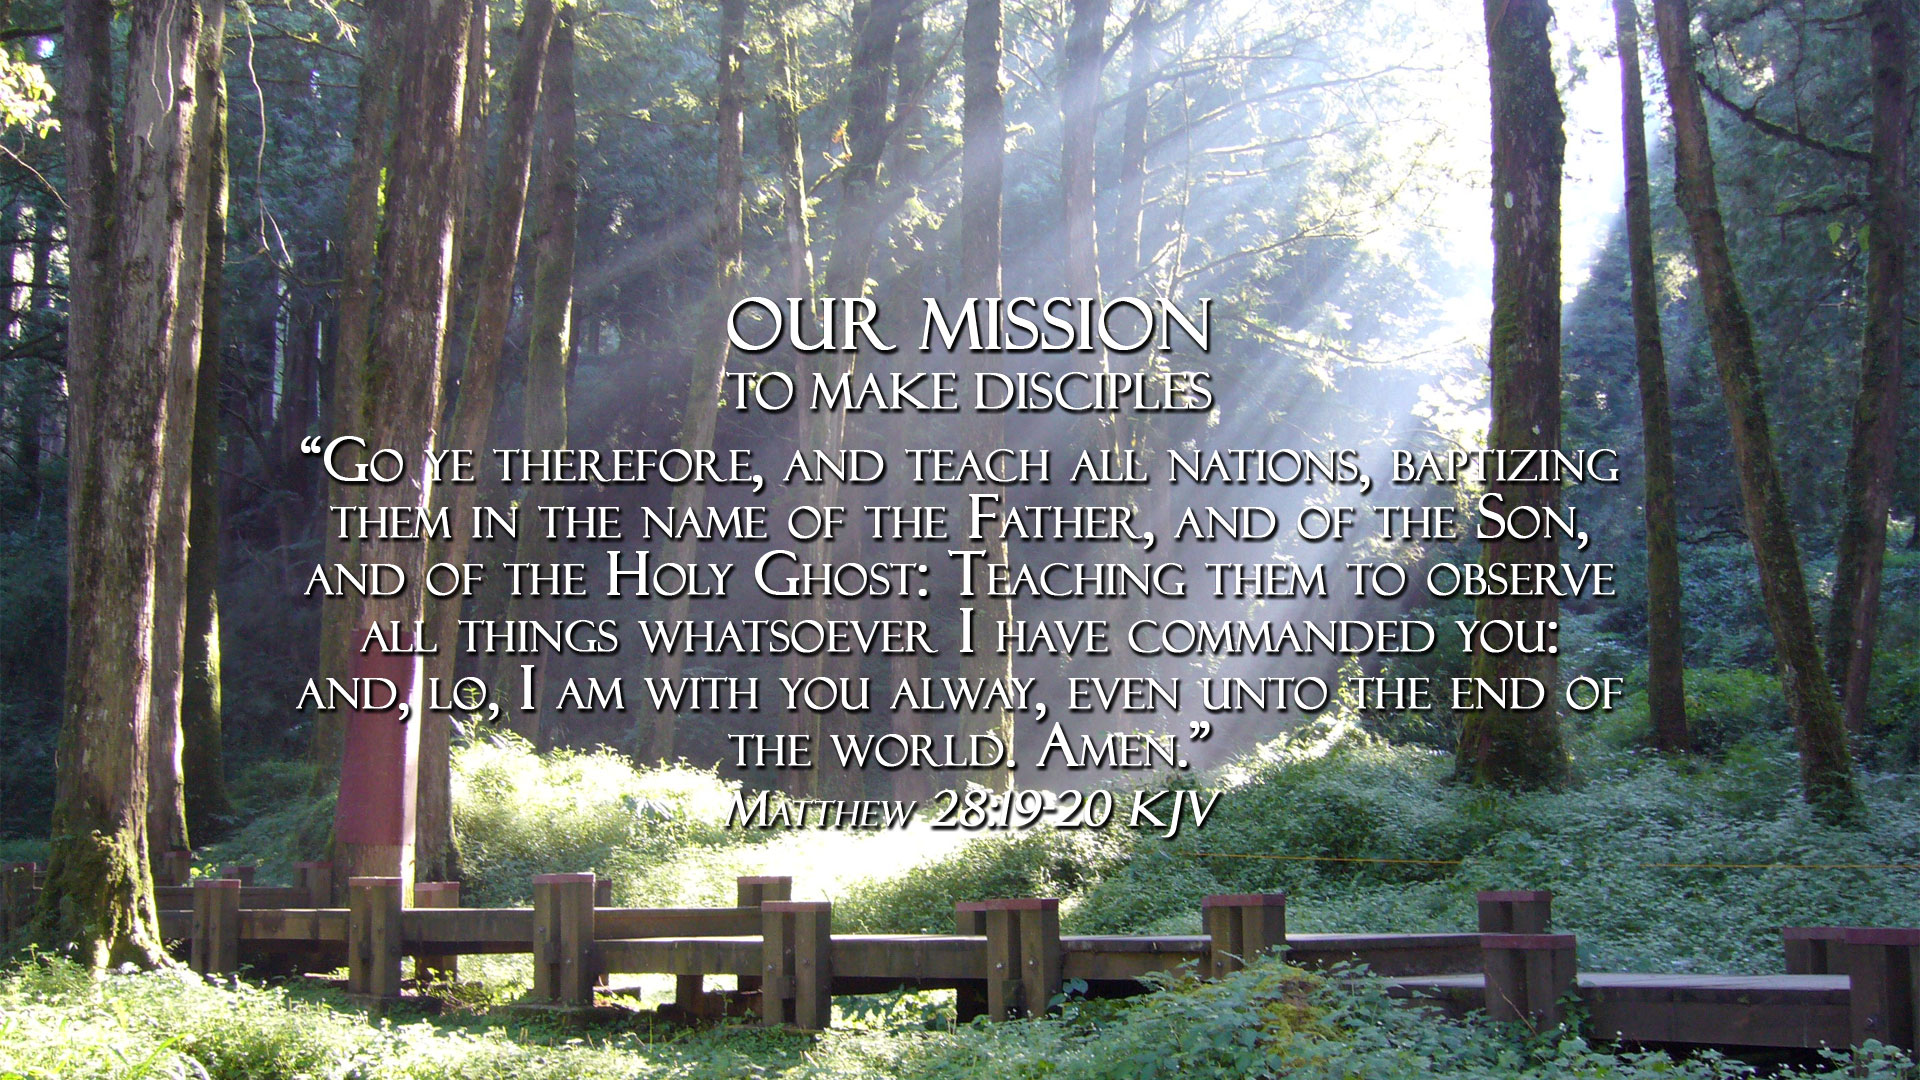 True Holiness Church of God in Christ mission statement